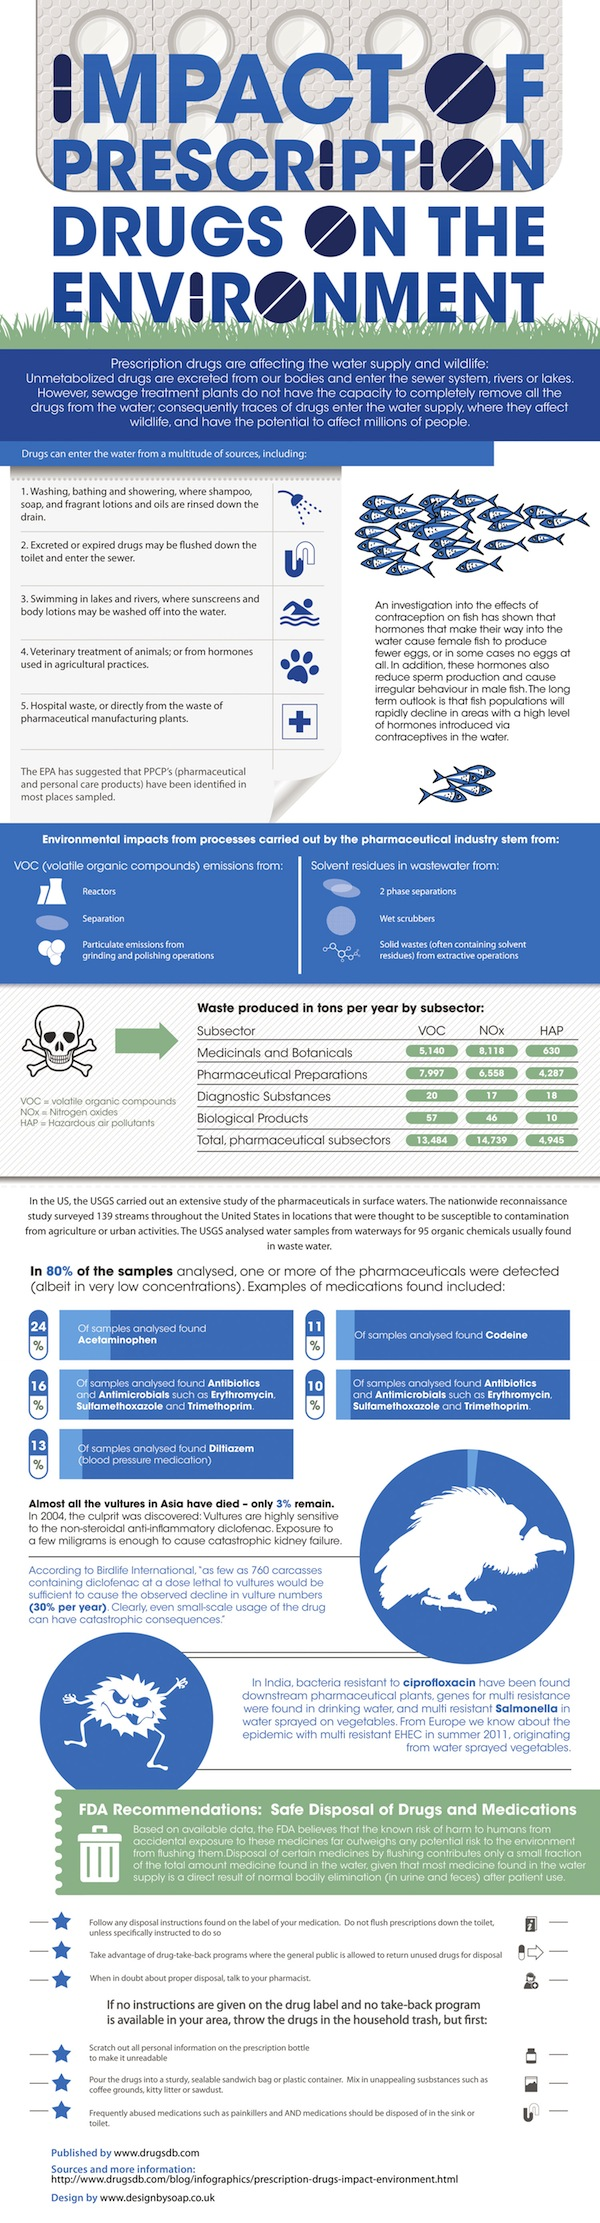 Prescription Drugs Environmental Impact-infographic